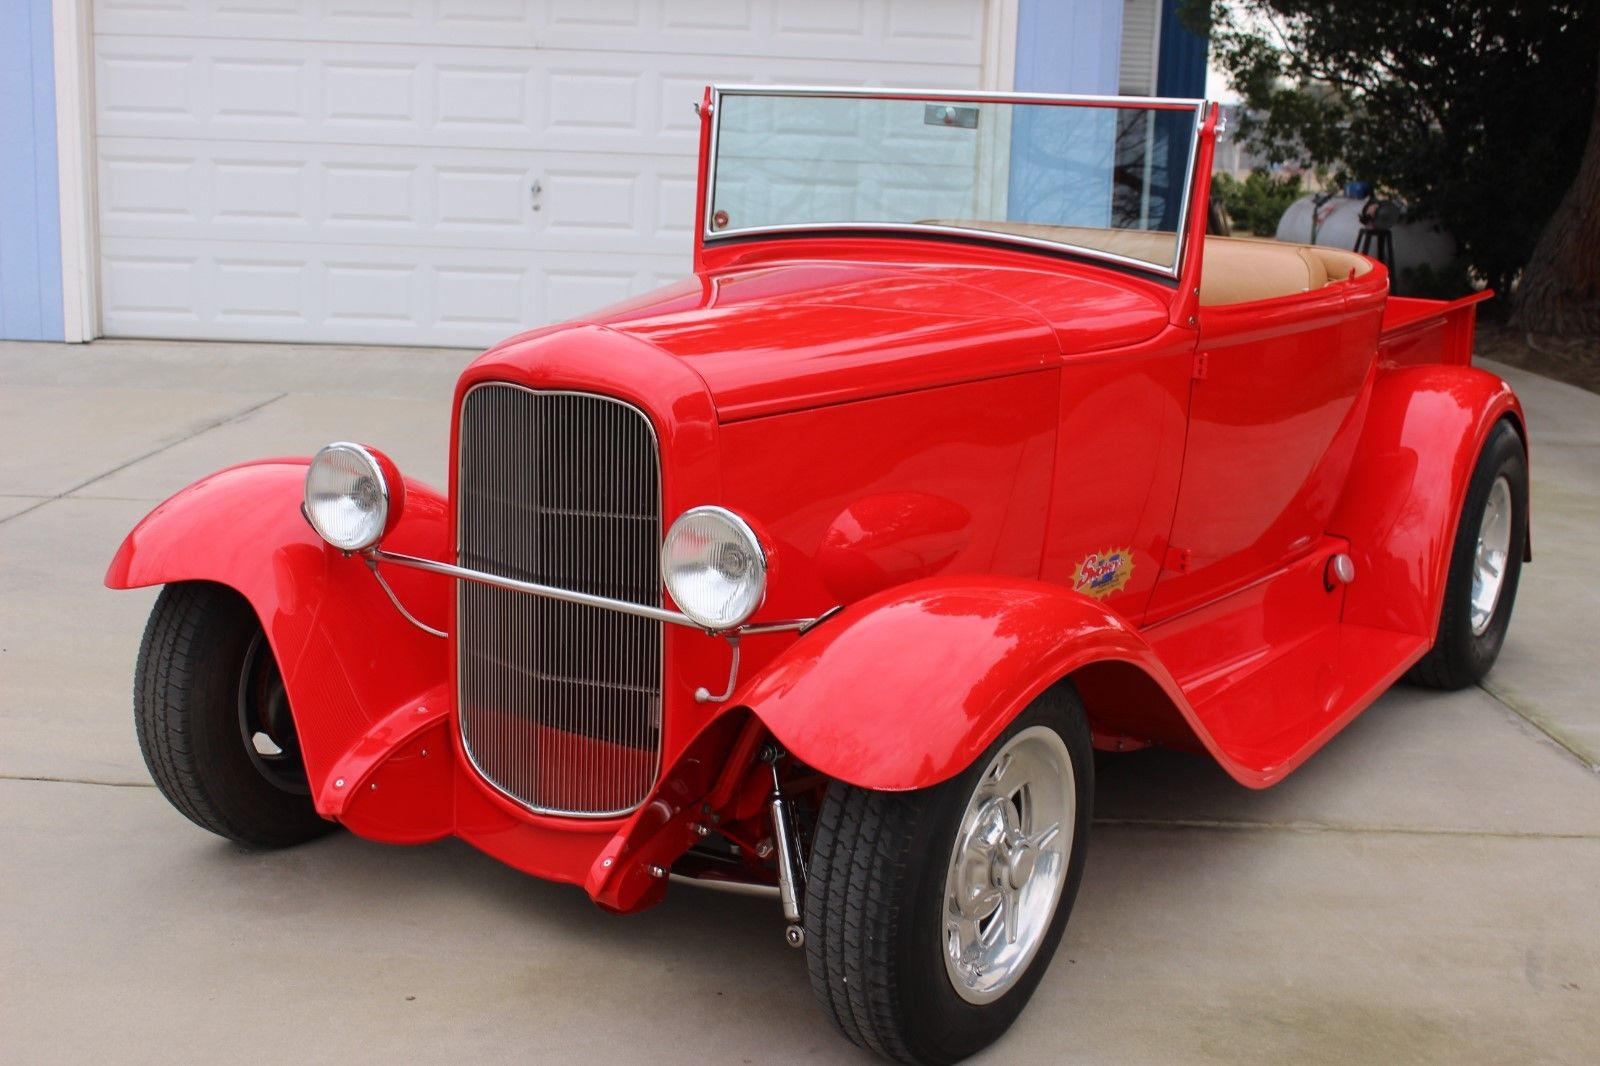 pro built 1931 ford model a roadster pickup hot rod for sale. Black Bedroom Furniture Sets. Home Design Ideas